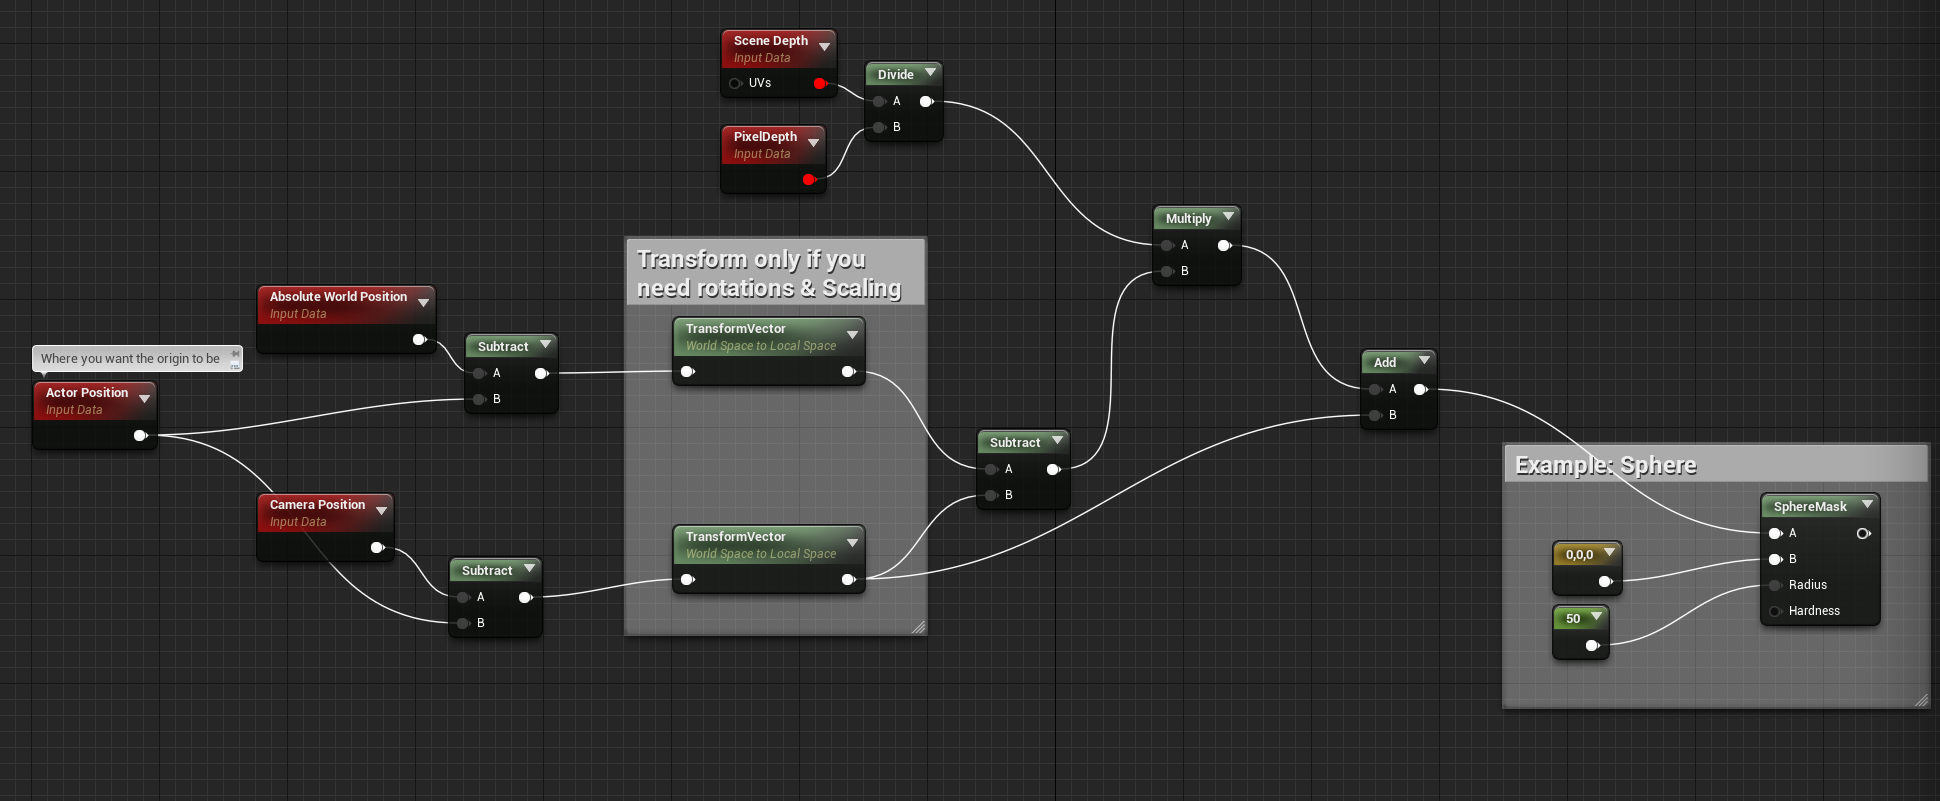 UE4 - Highlighting the cross section of intersecting